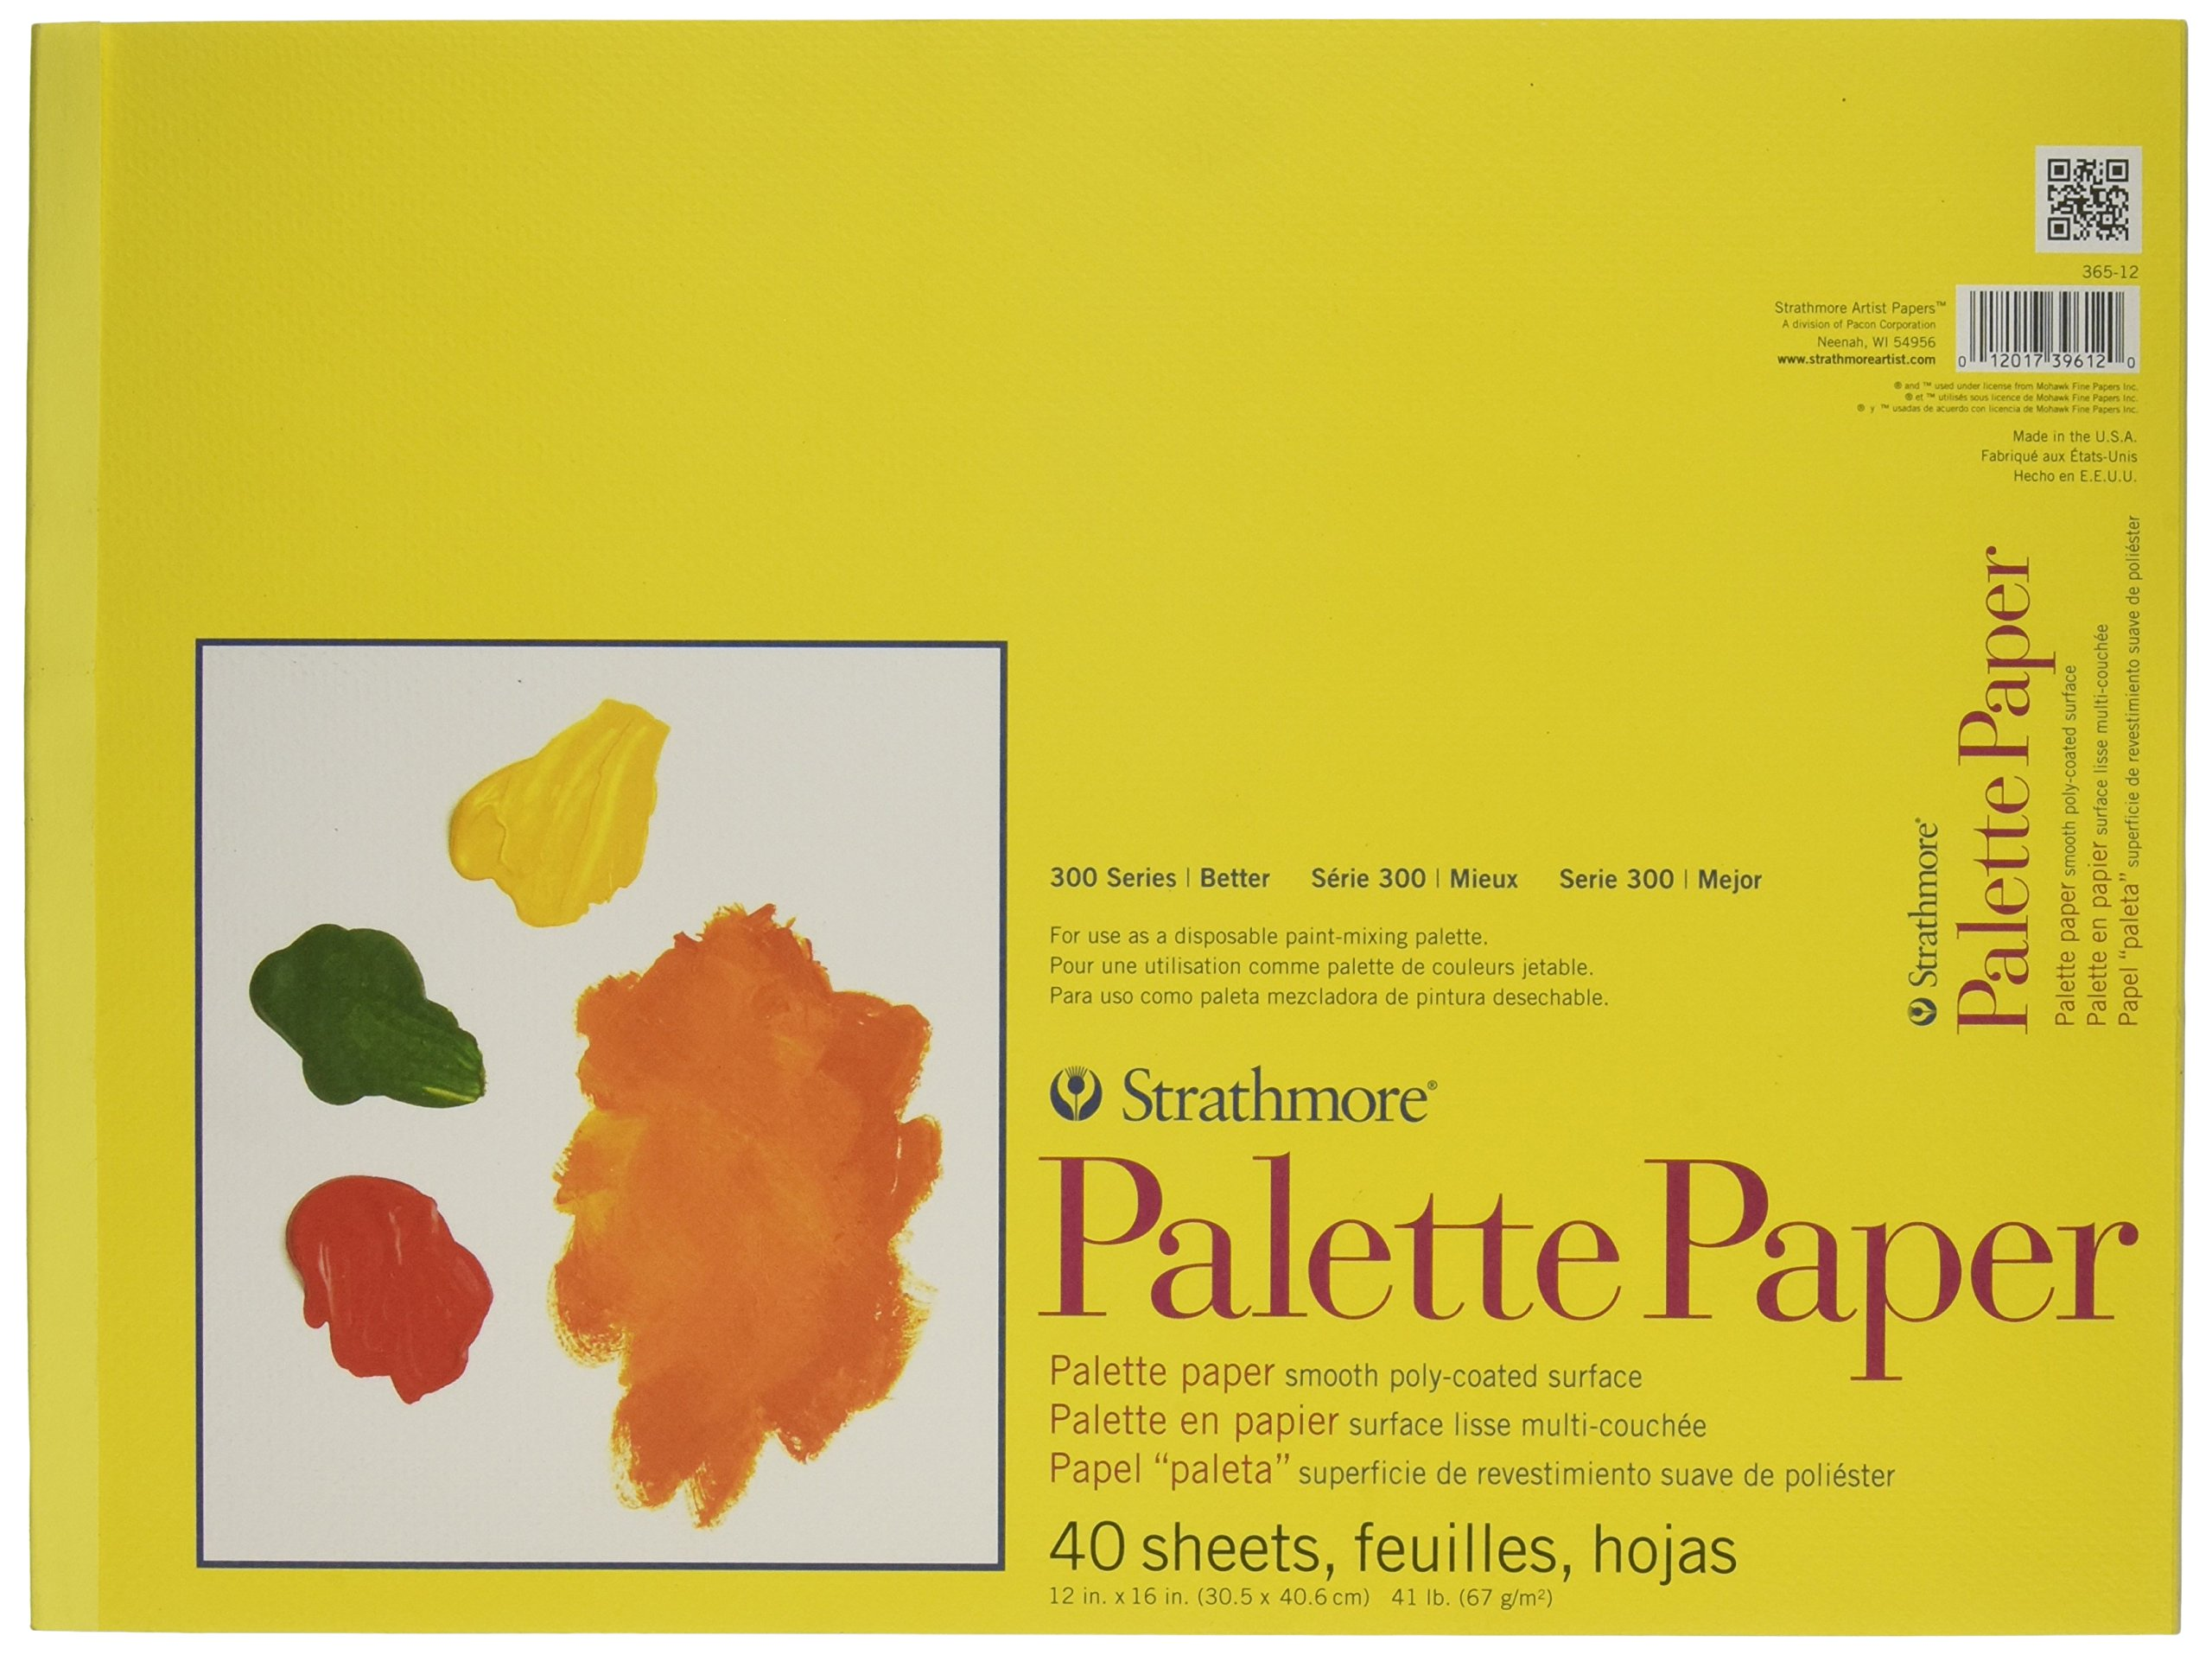 Strathmore 365-12 300 Series Paper STR-365-12 40 Sheet Disposable Palette, 12 by 16'', 12''x16'', White by Strathmore